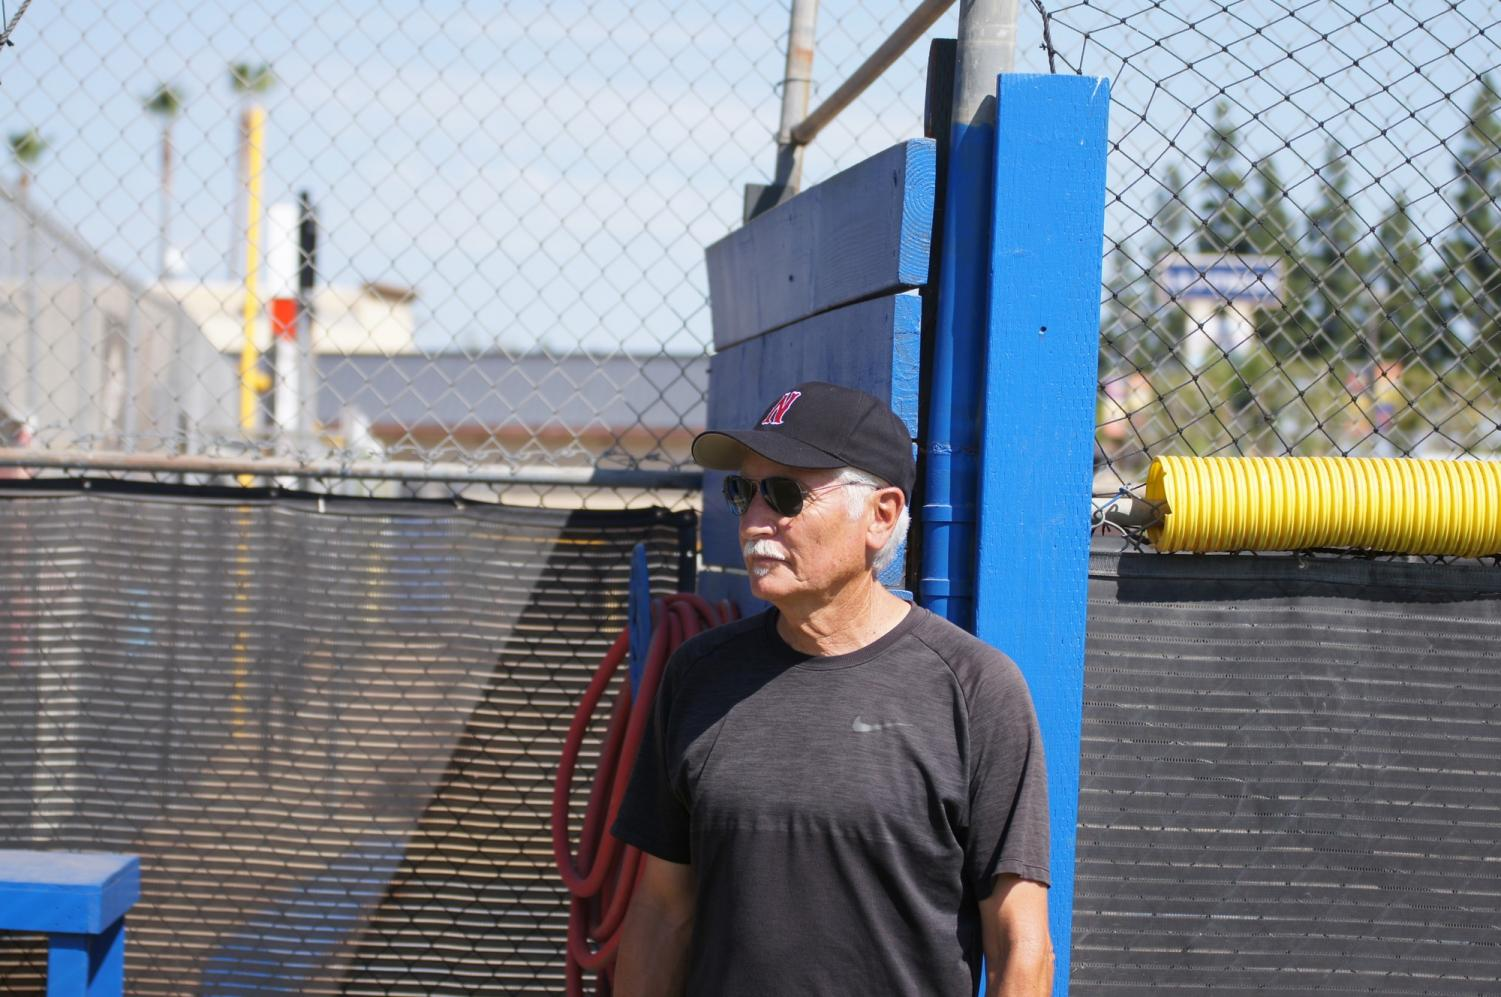 Larry Baca, 74, stands in the same dugout he used to coach little league in 25 years ago. Photo credit: Bryanna Winner